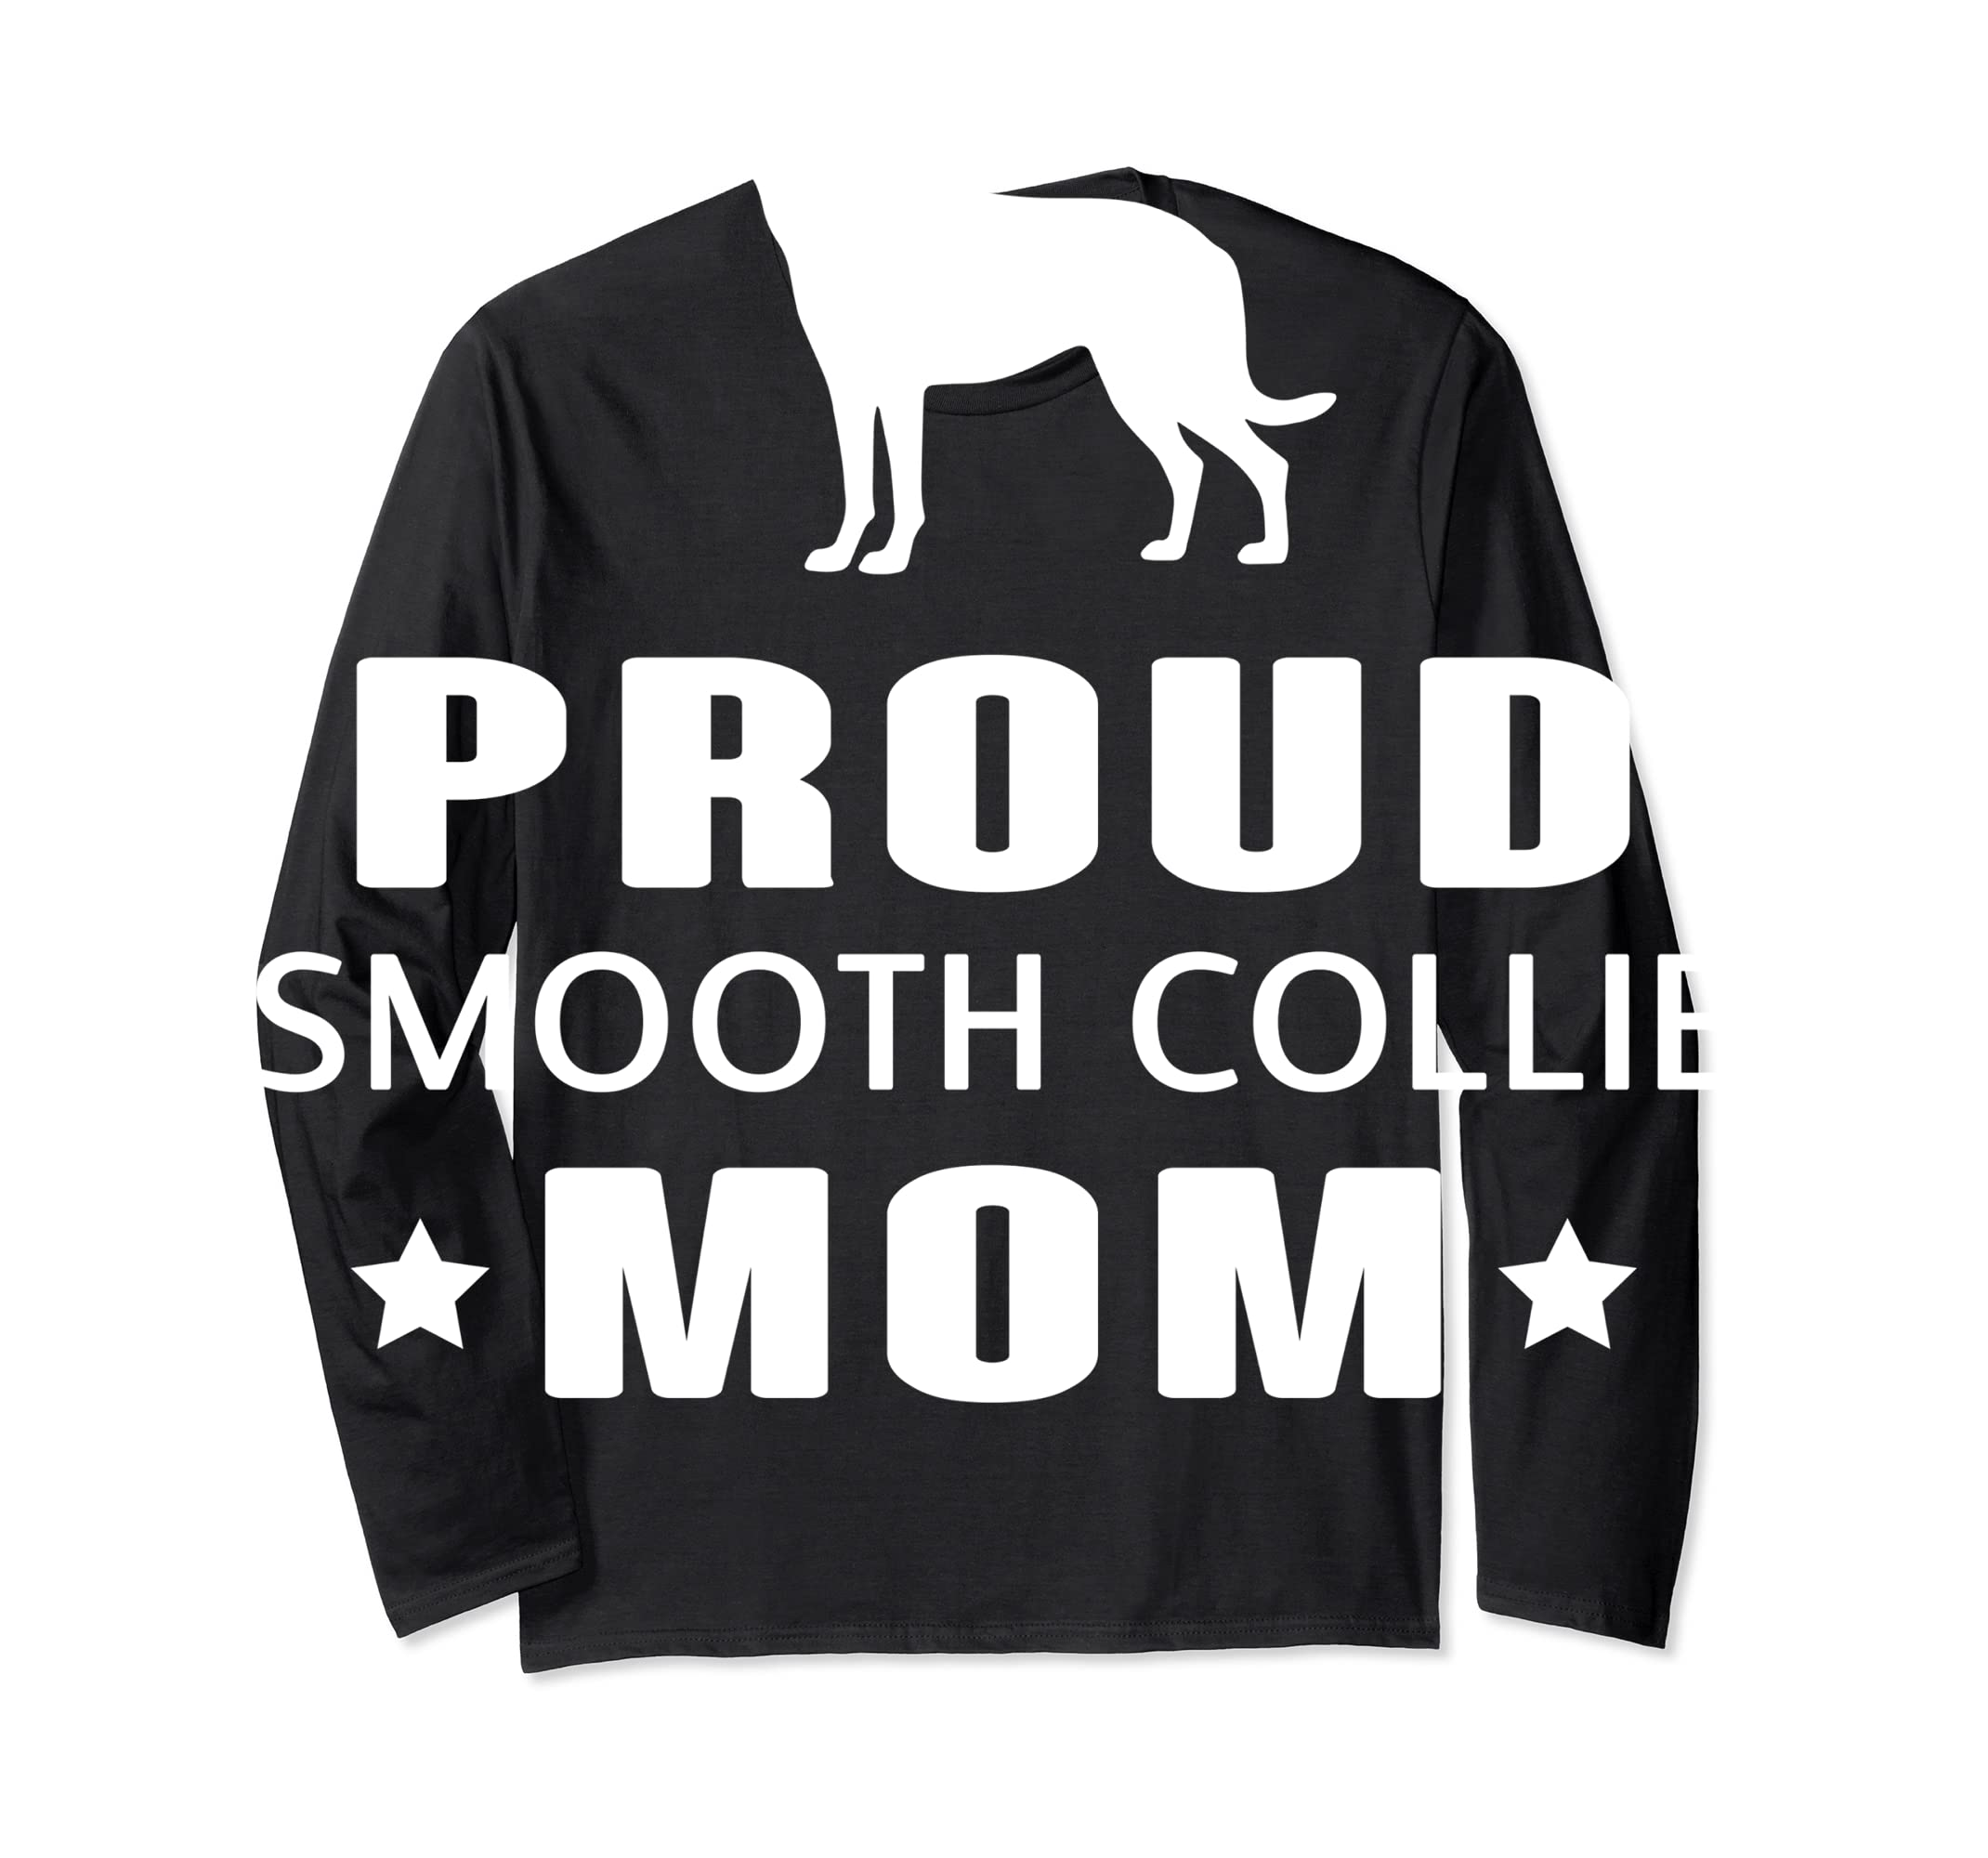 Smooth Collie Funny T-Shirts For Dog Lovers-Long Sleeve-Black